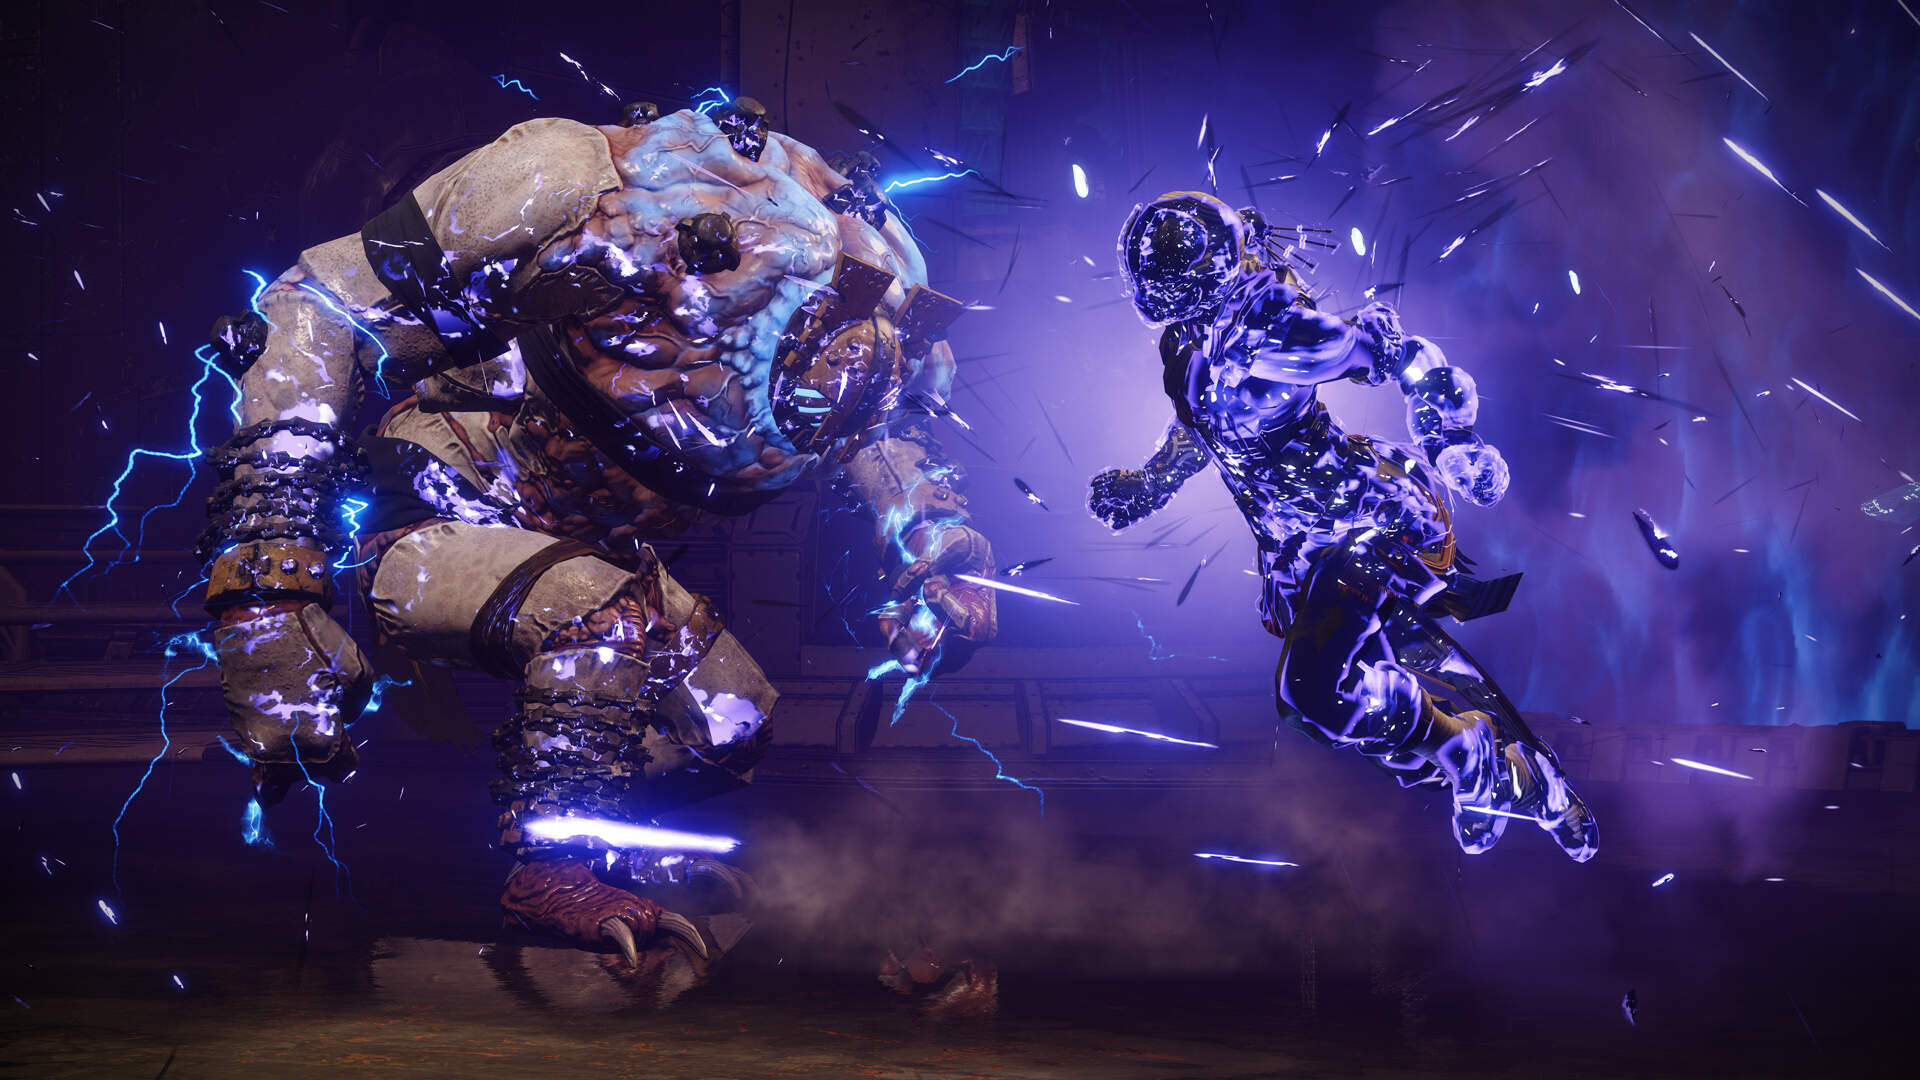 Destiny 2 Cross-Save Leaked, but the Feature Might Not Come to PS4